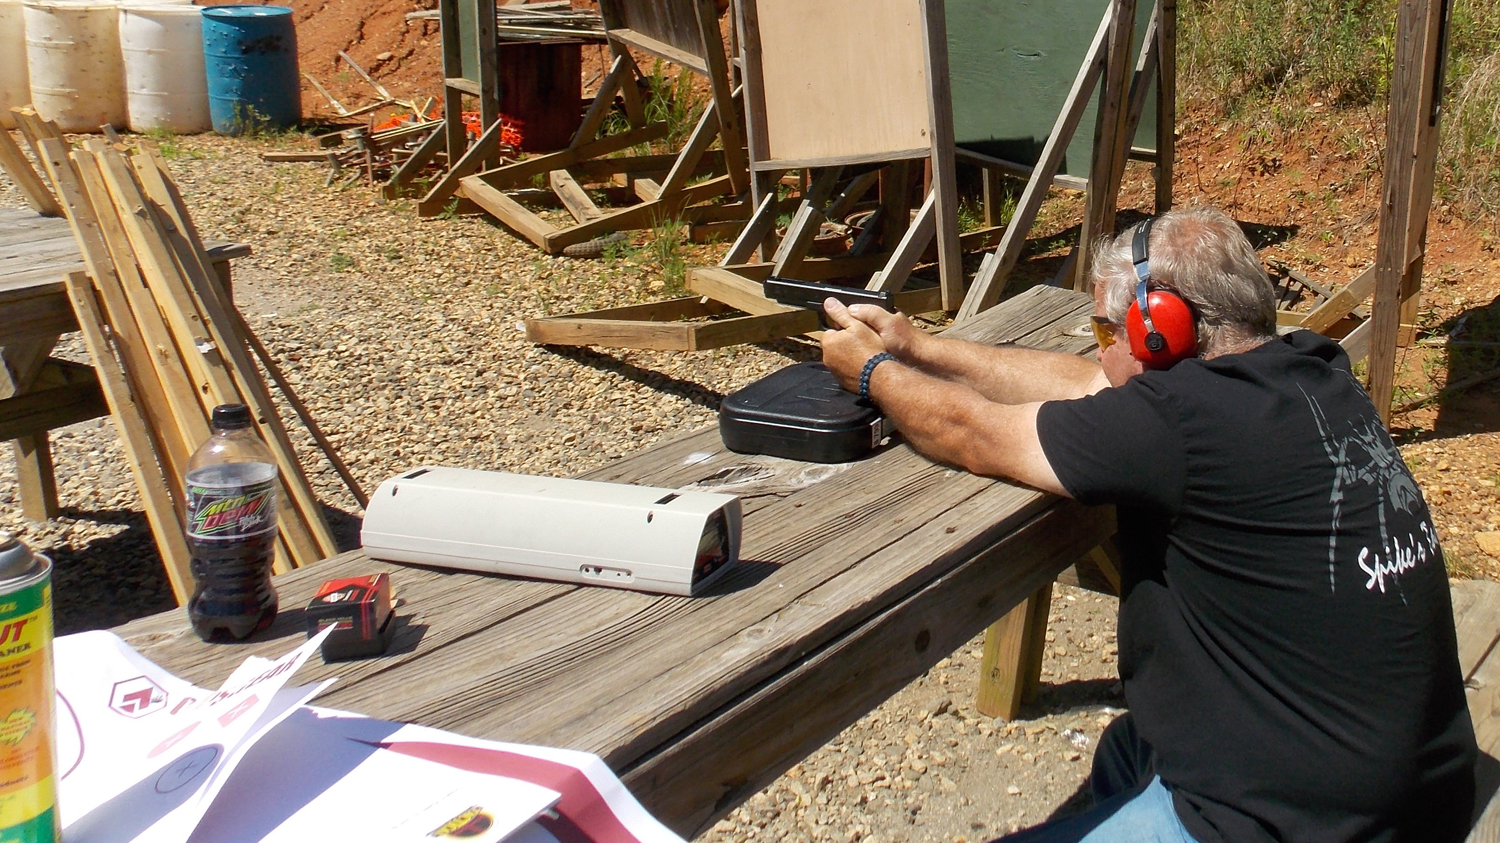 Bob Campbell firing the Glock 35 from the bench